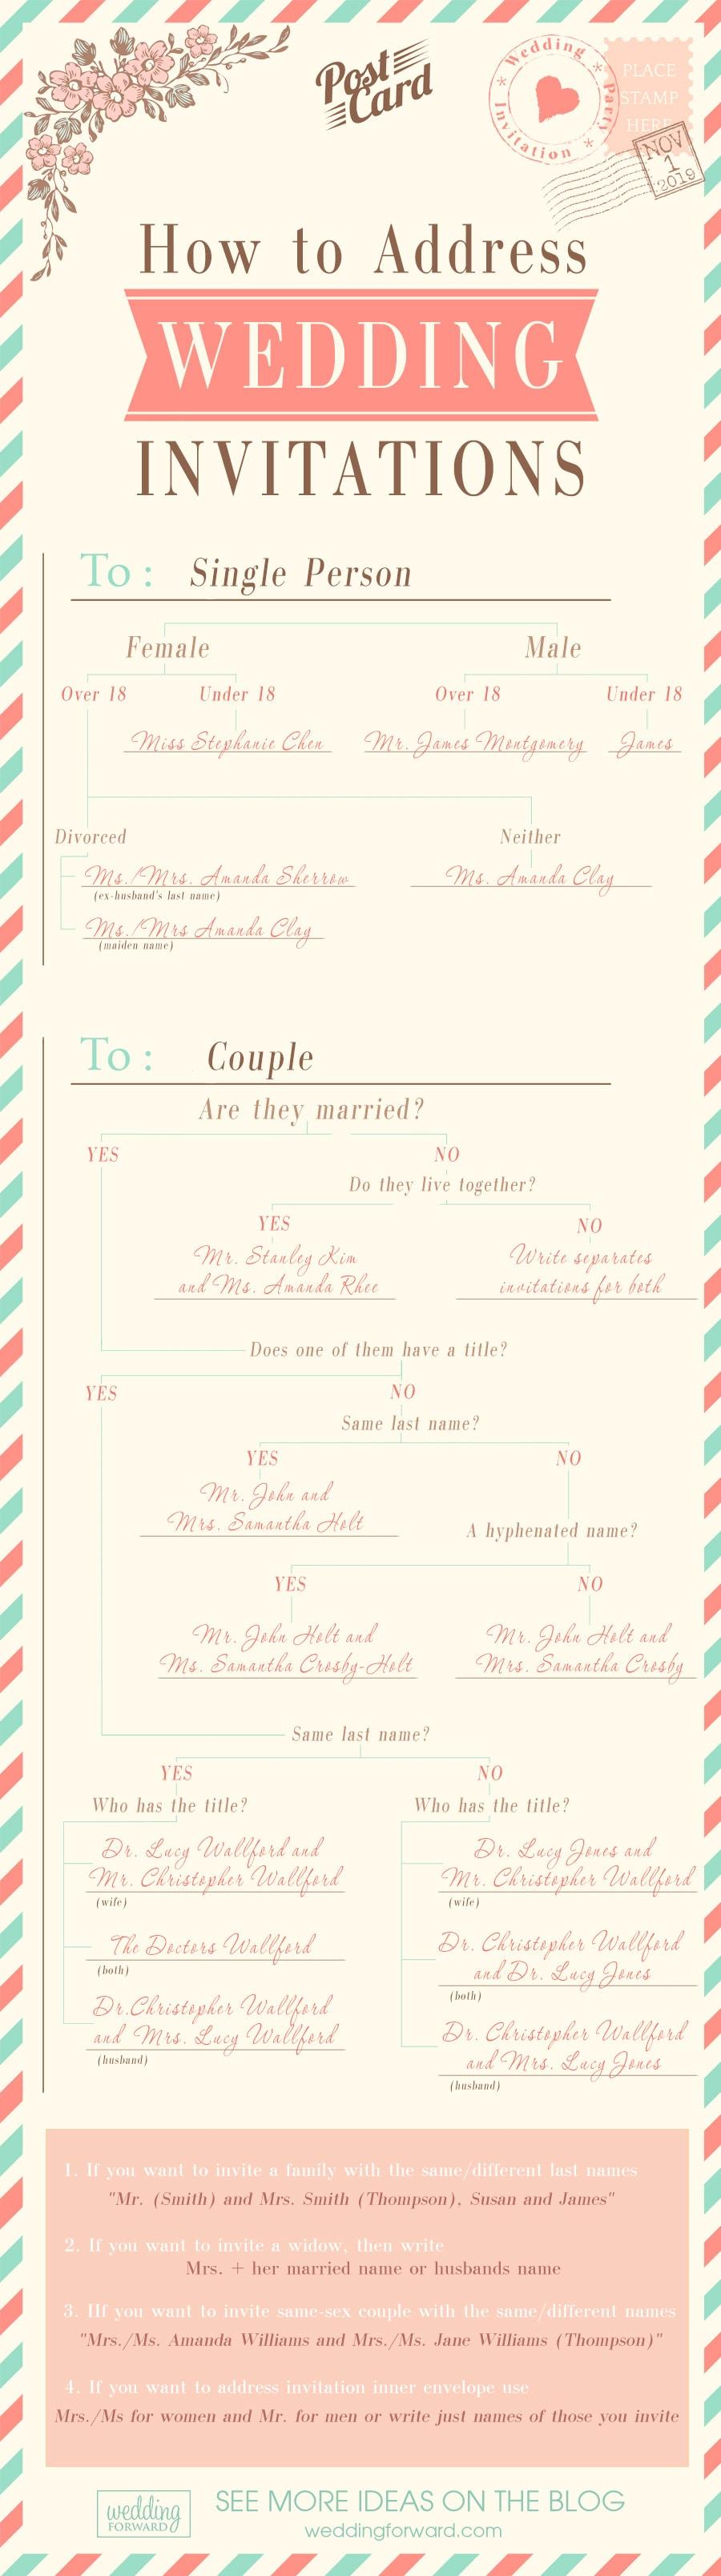 How to Properly Address Wedding Invitations Infographic